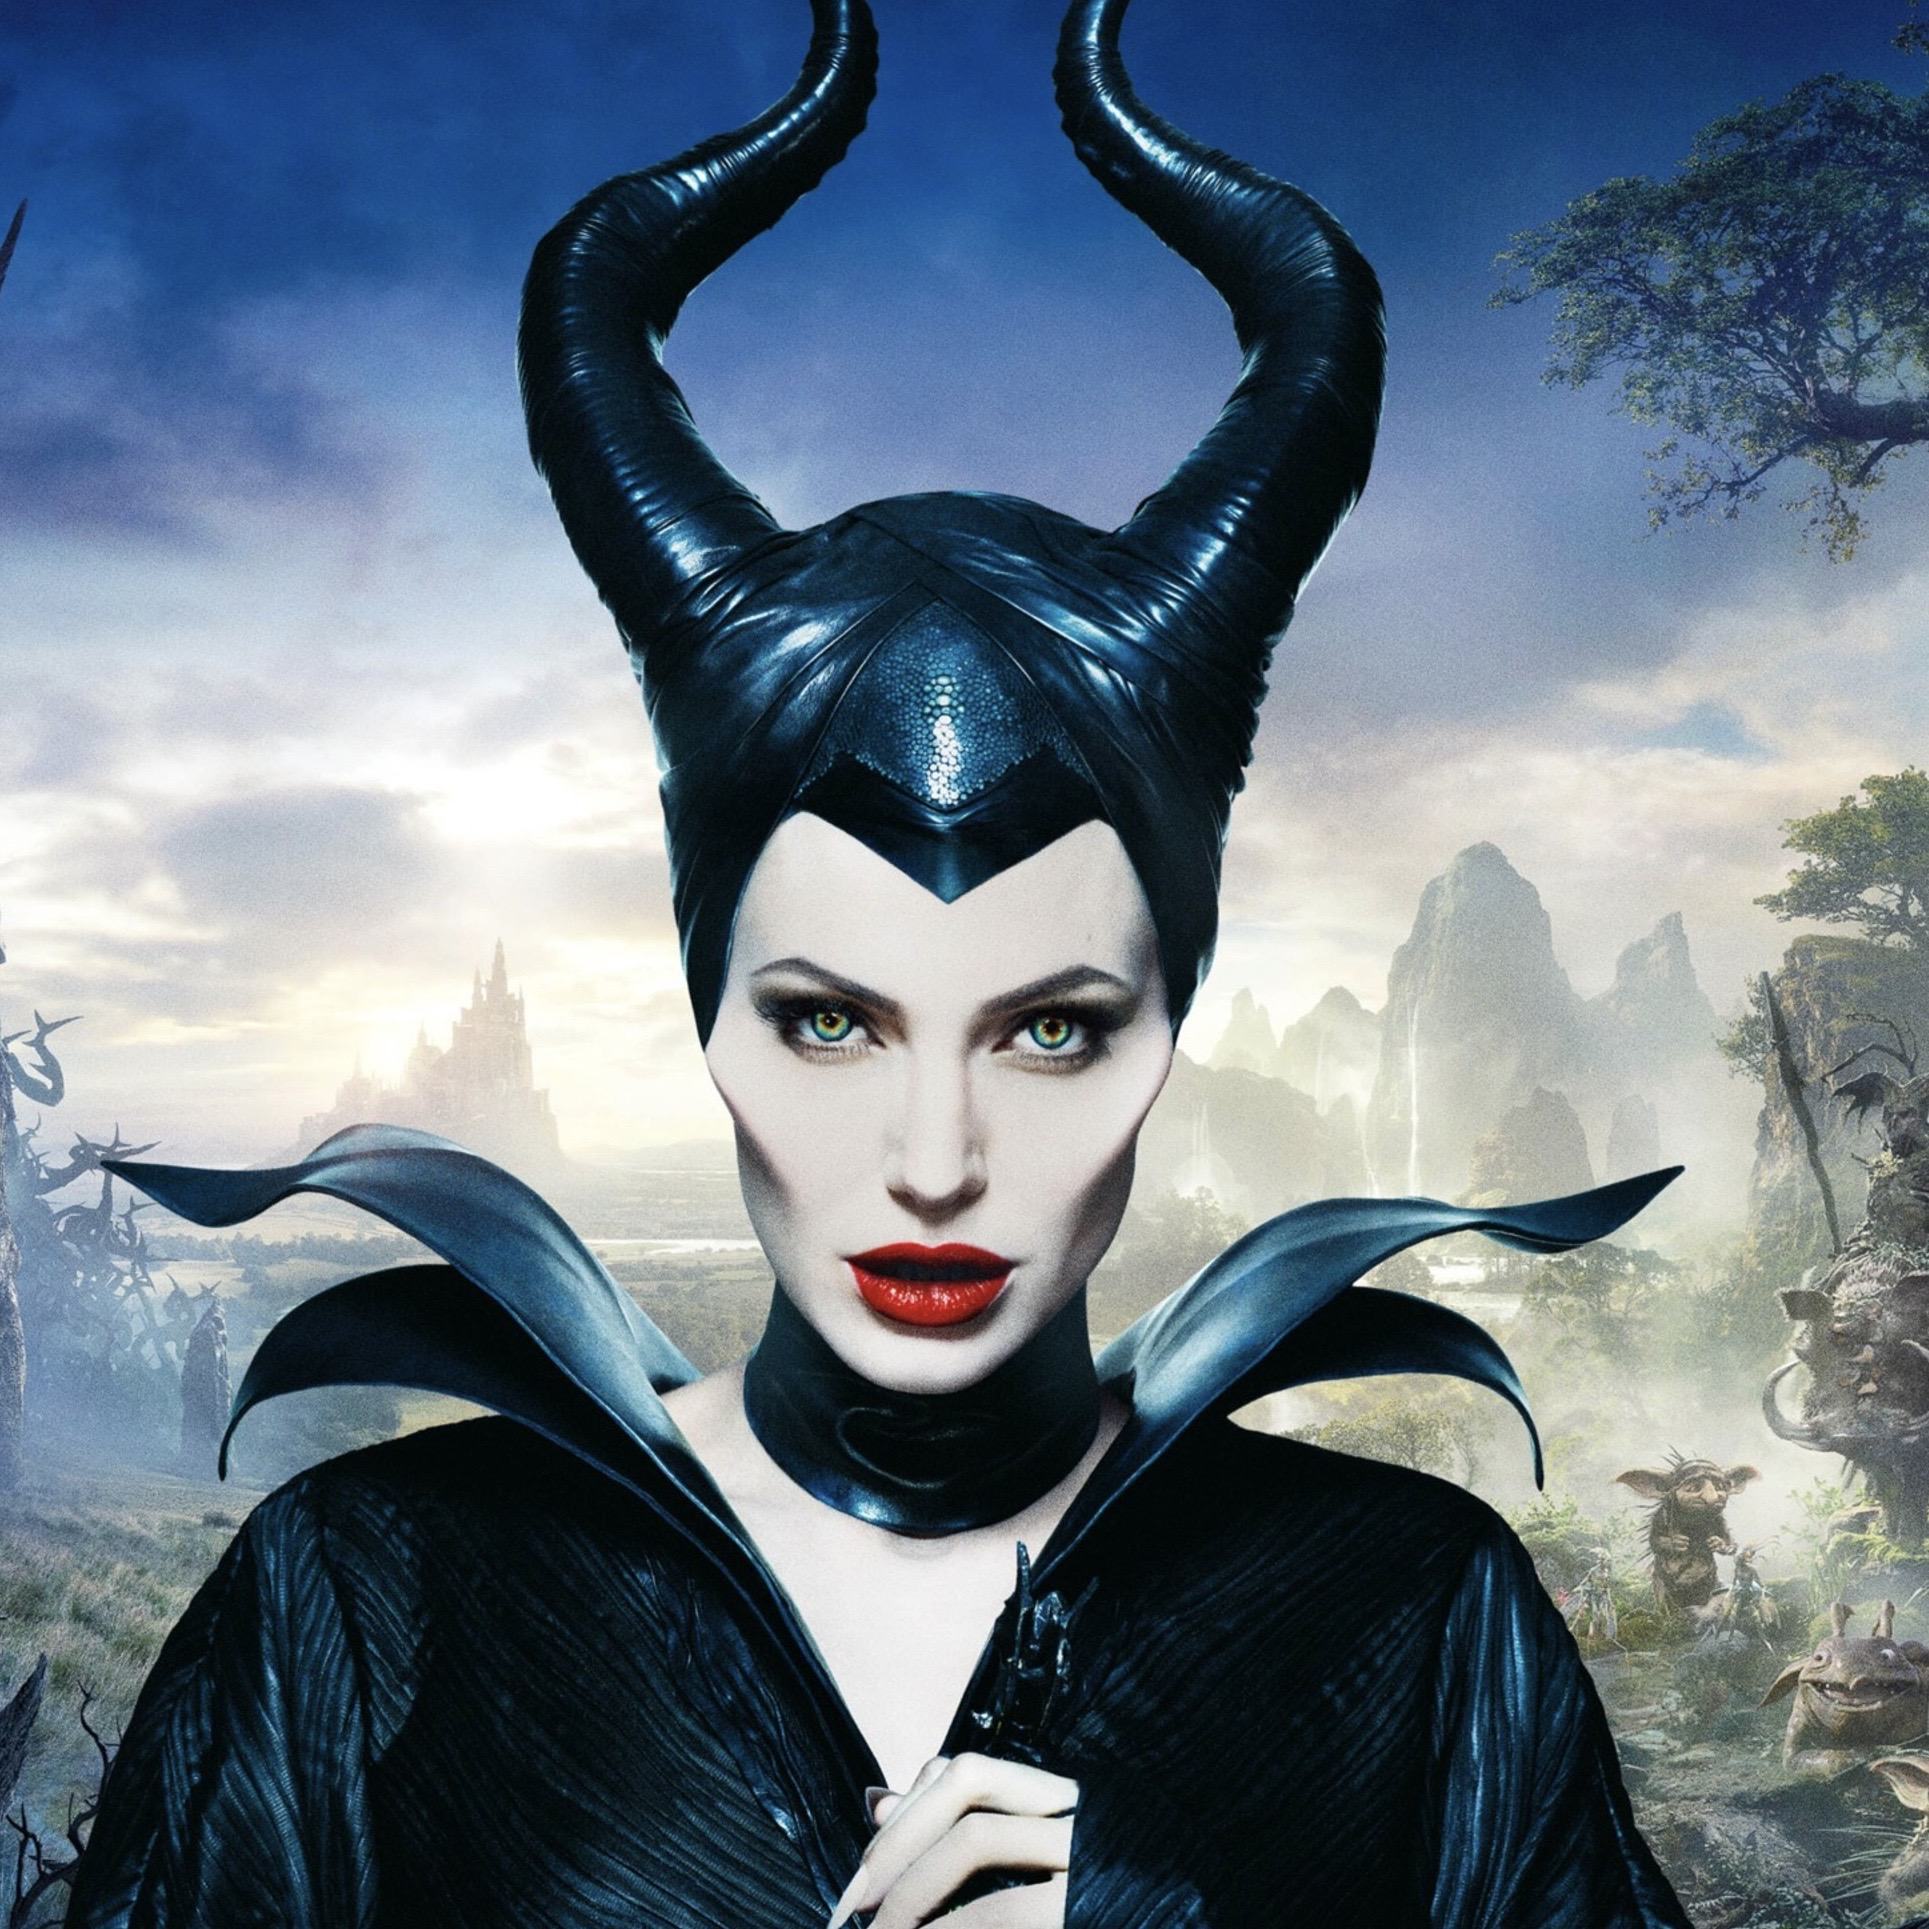 Maleficent Mistress Of Evil Return To The Moors